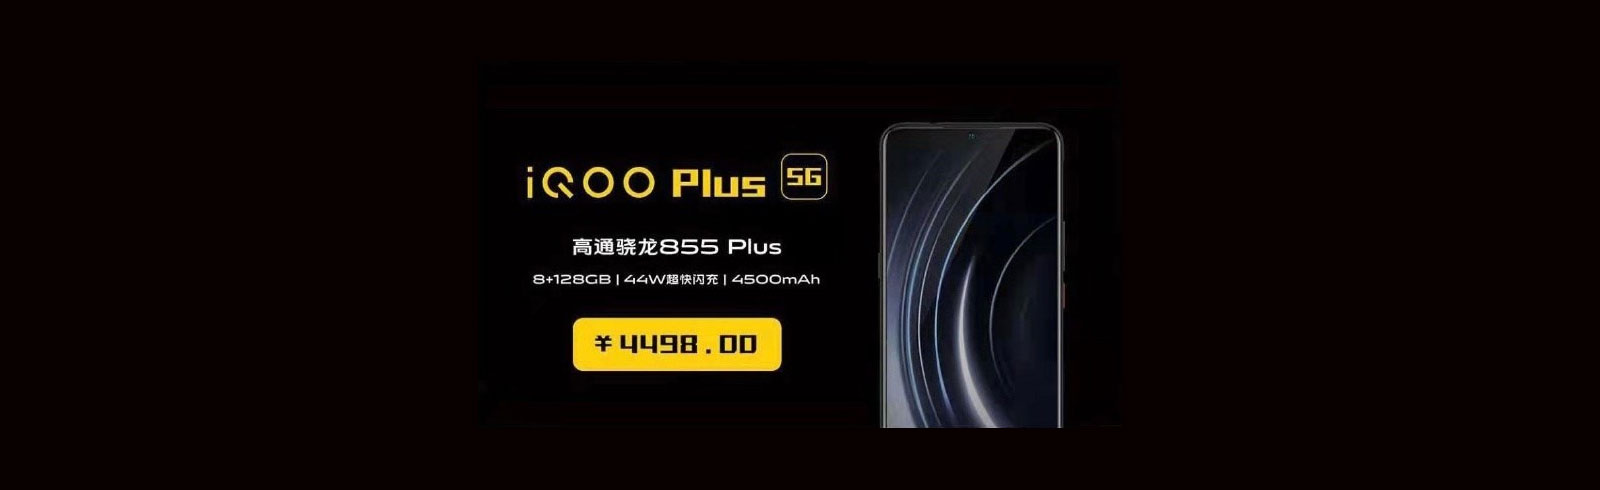 vivo will launch the iQOO Plus 5G in China soon, will cost only USD 654